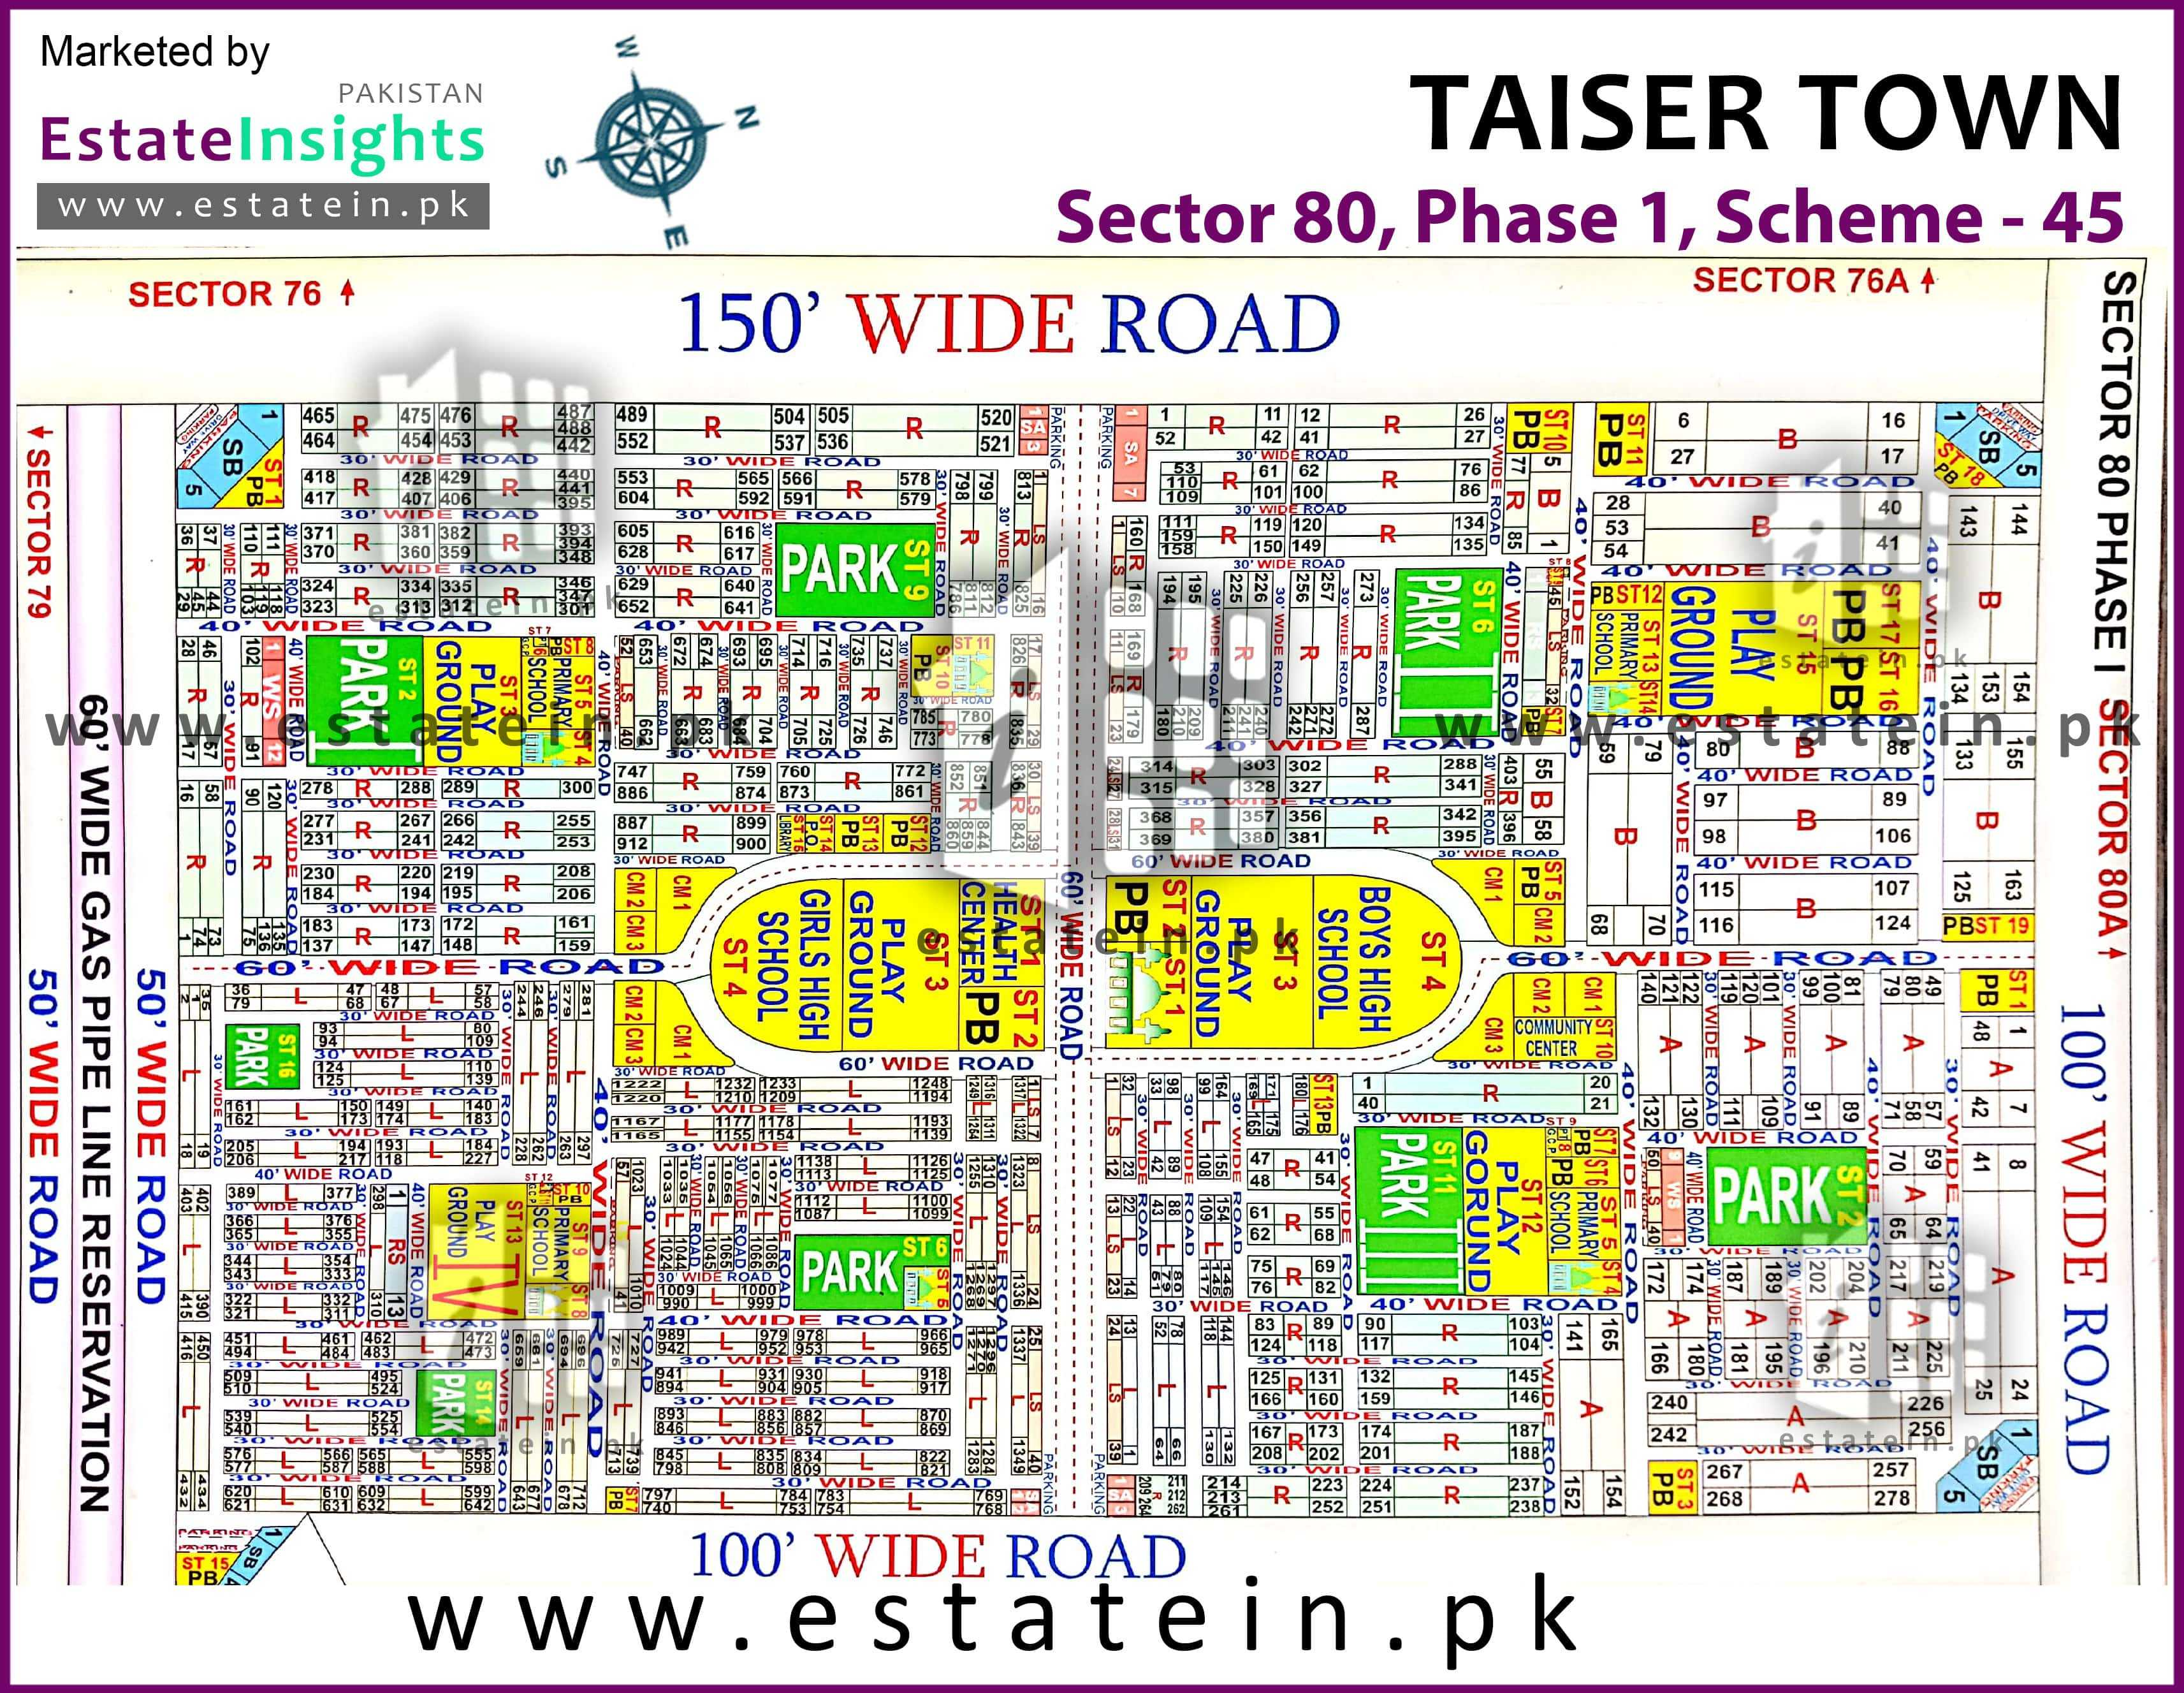 Site Plan of Sector 80 of Taiser Town Phase I